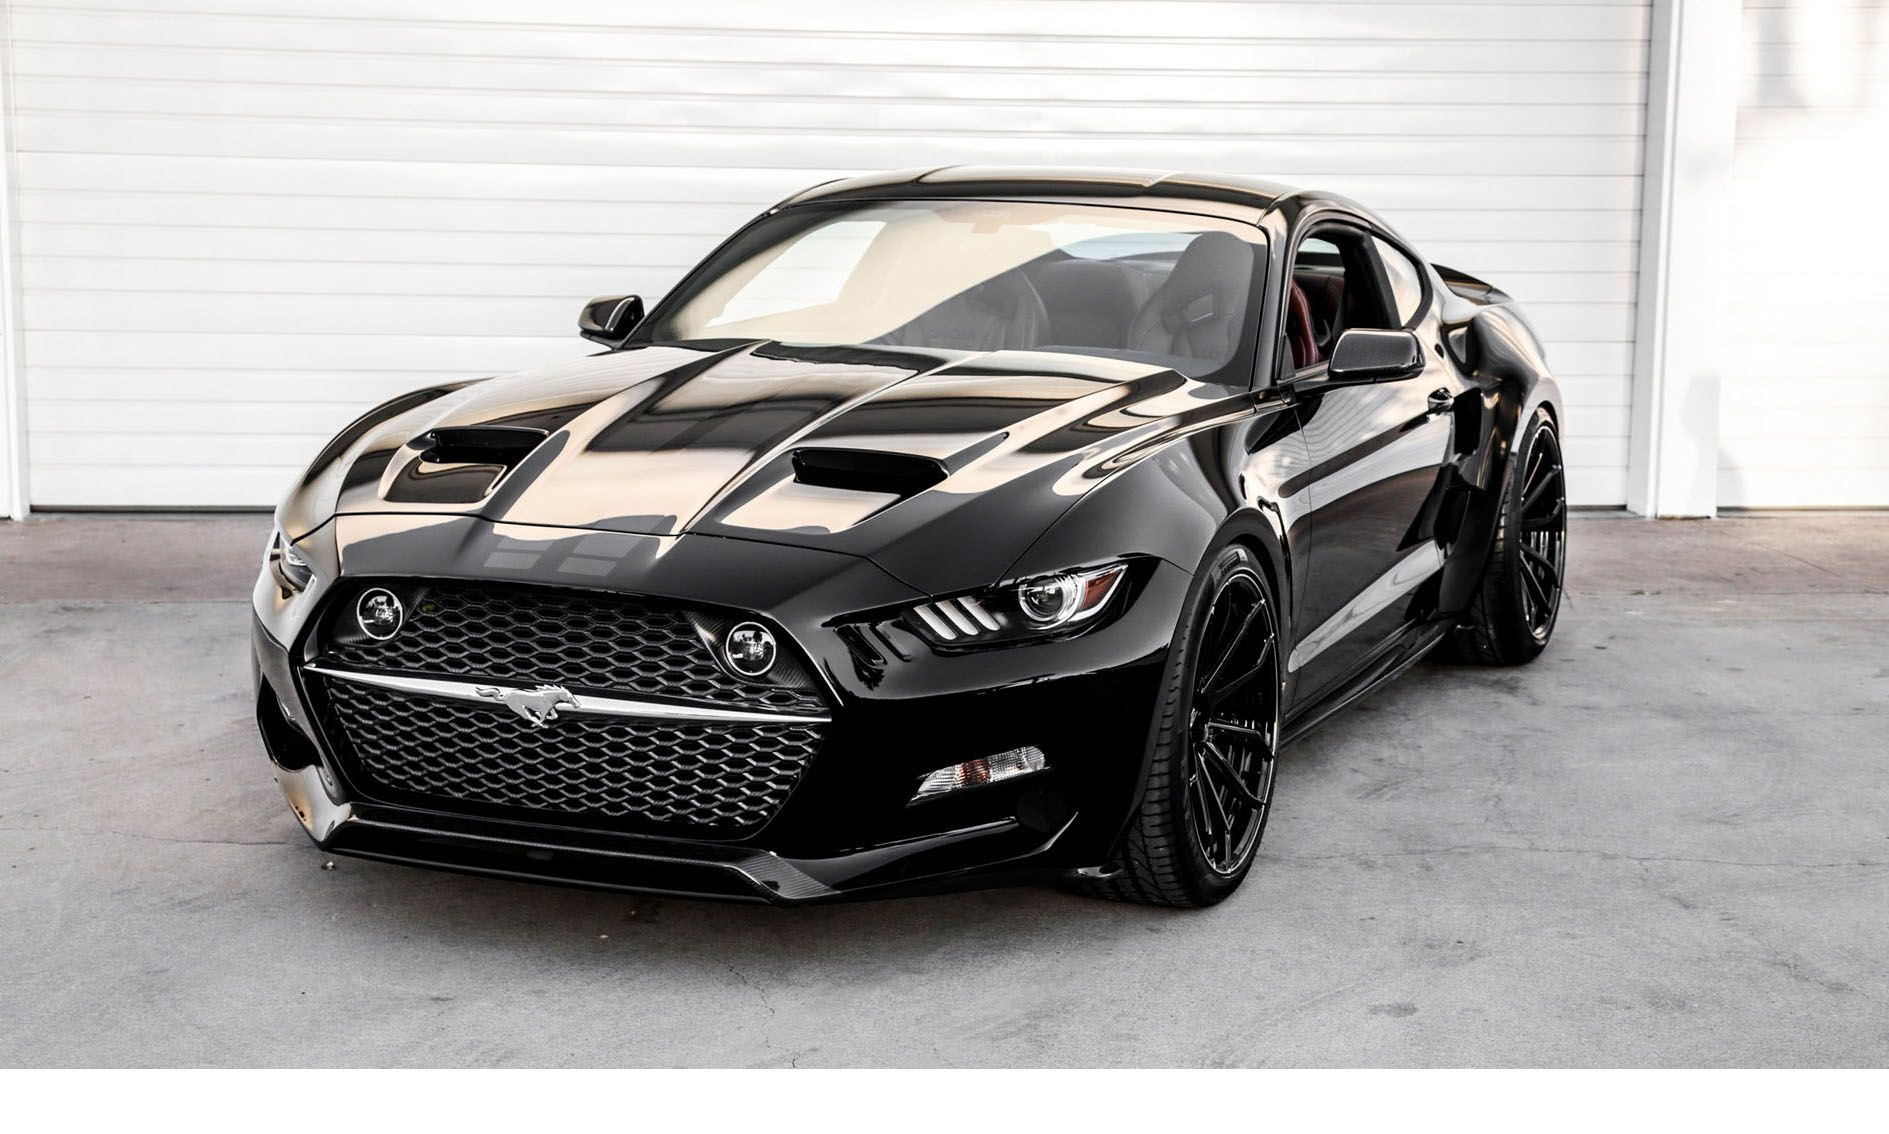 Image result for 2017 mustang black